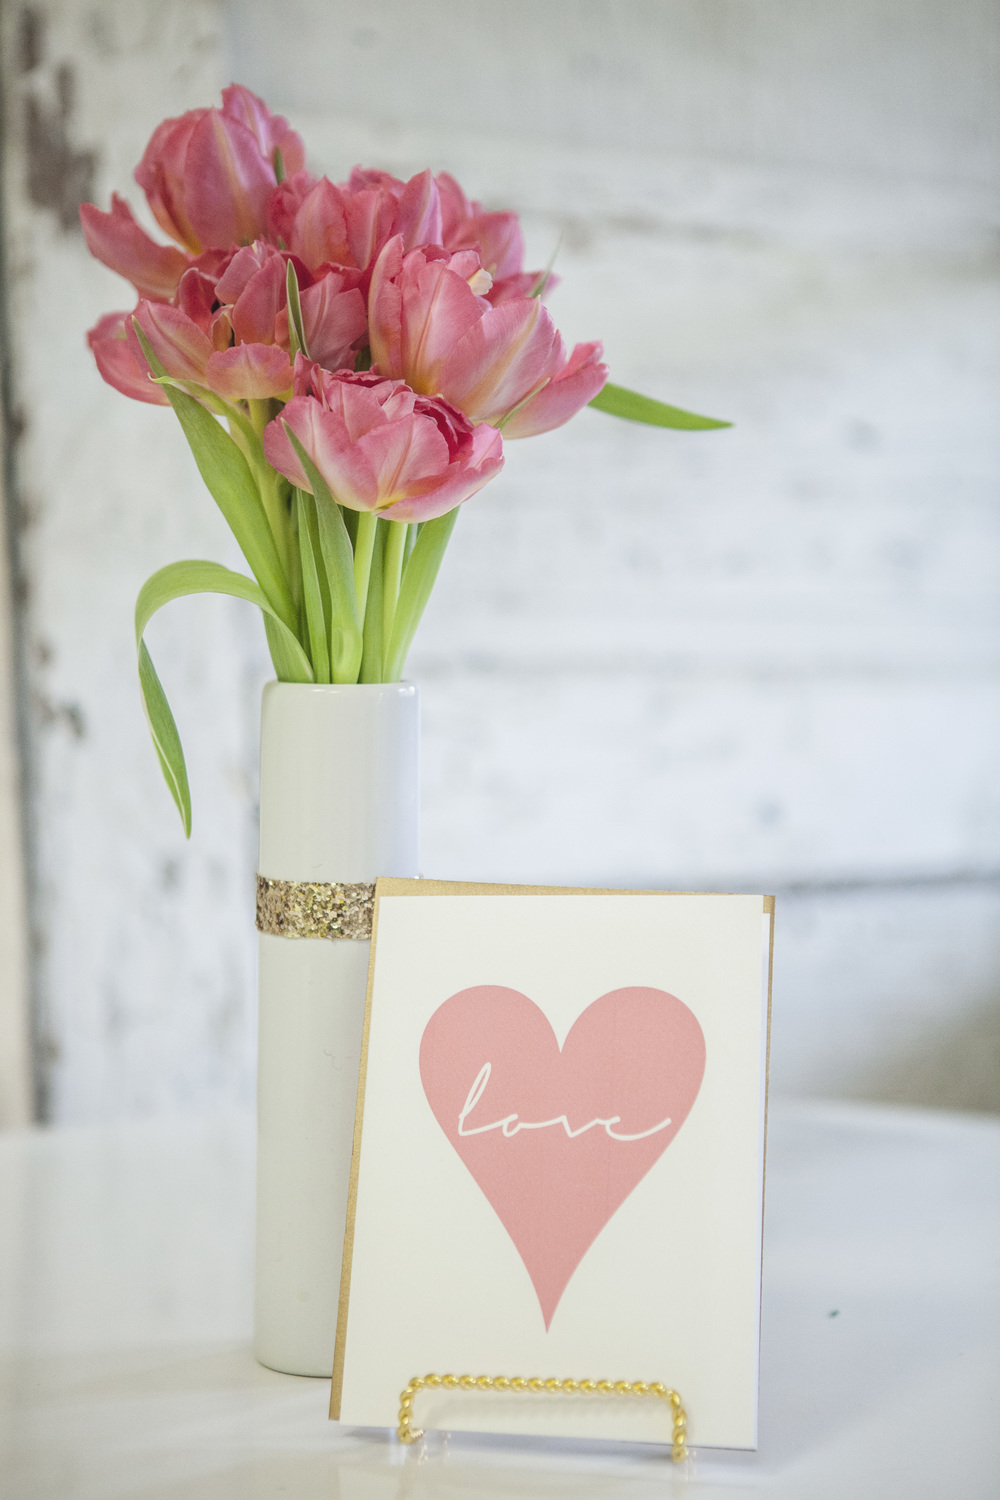 White Cylinder with Gilded Band- $30 Featuring a half dozen Tulips in Bold Pink. White cylinder vase is adorned with a gold gilded band. Includes your choice of greeting card. No upgrades are available for this item.